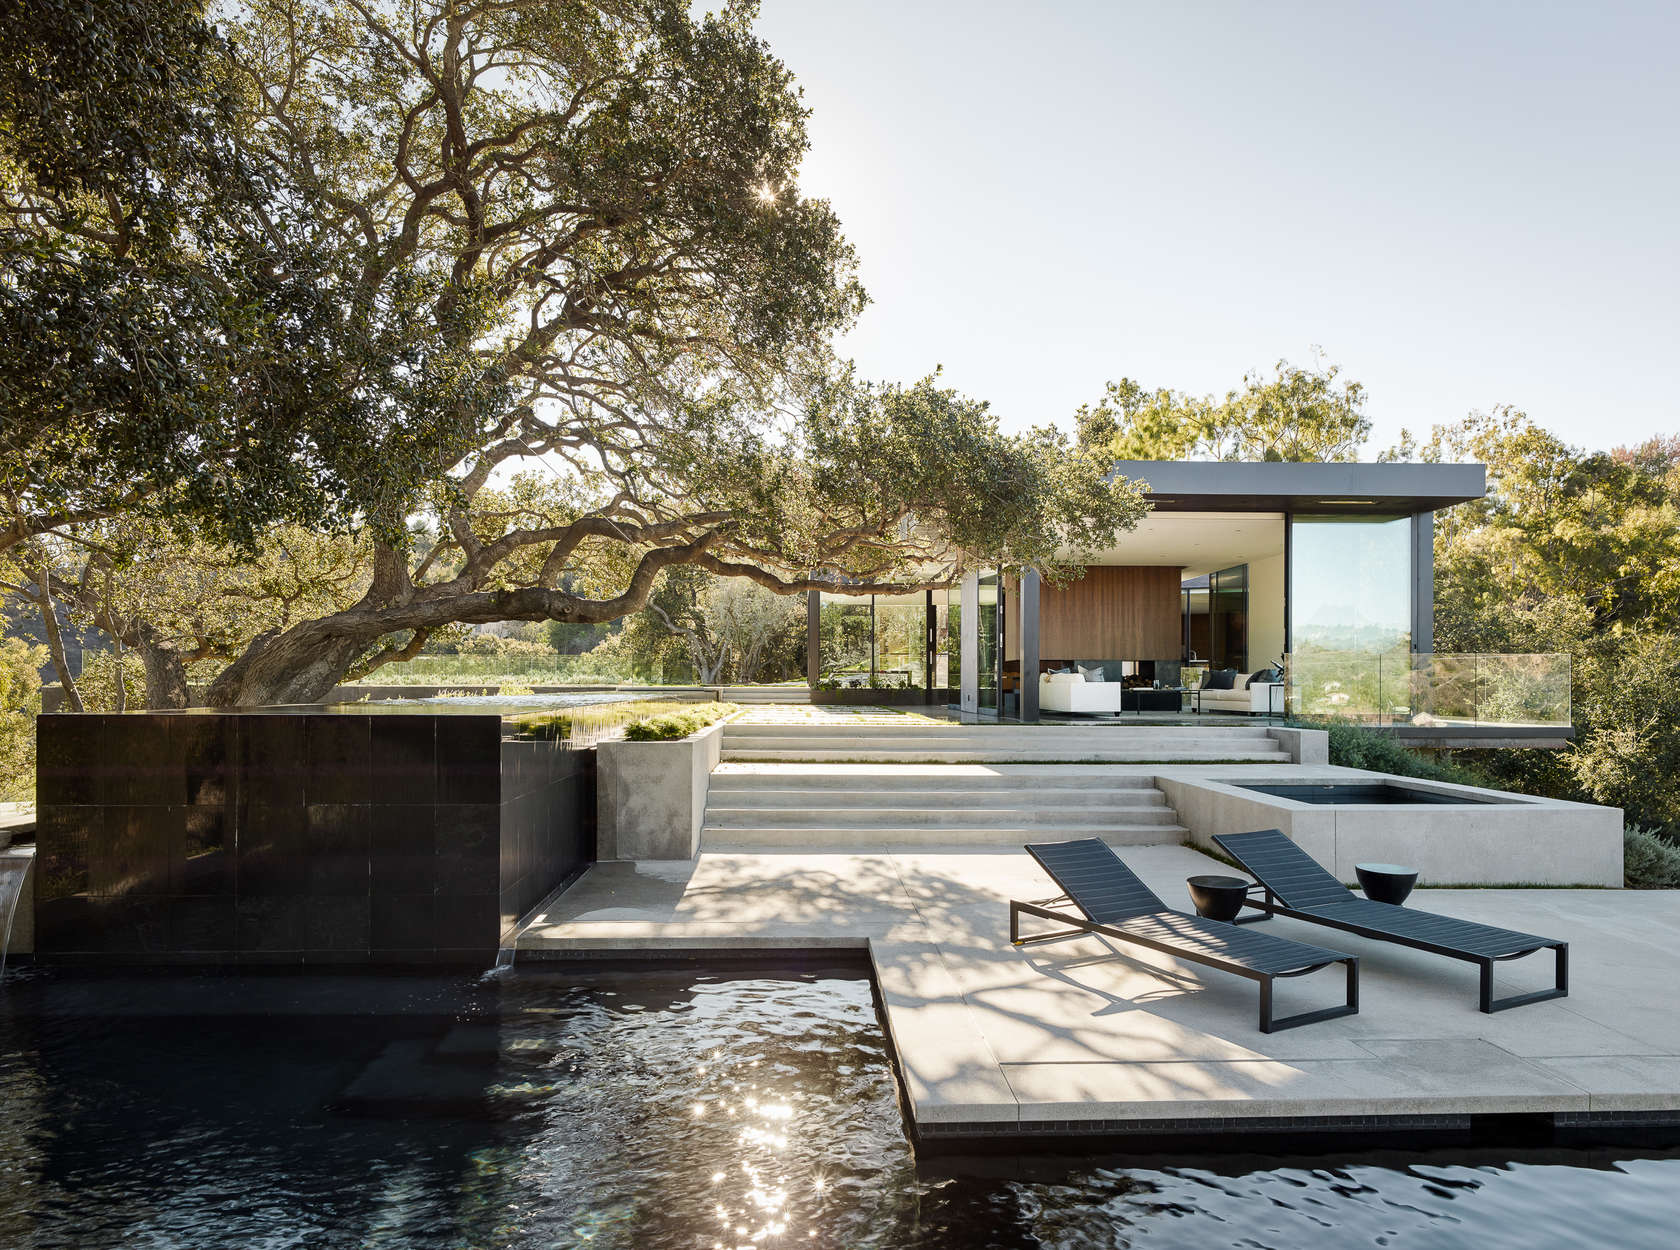 Outdoor Deck Design - An upside down beverly hills home with a minimalist exterior